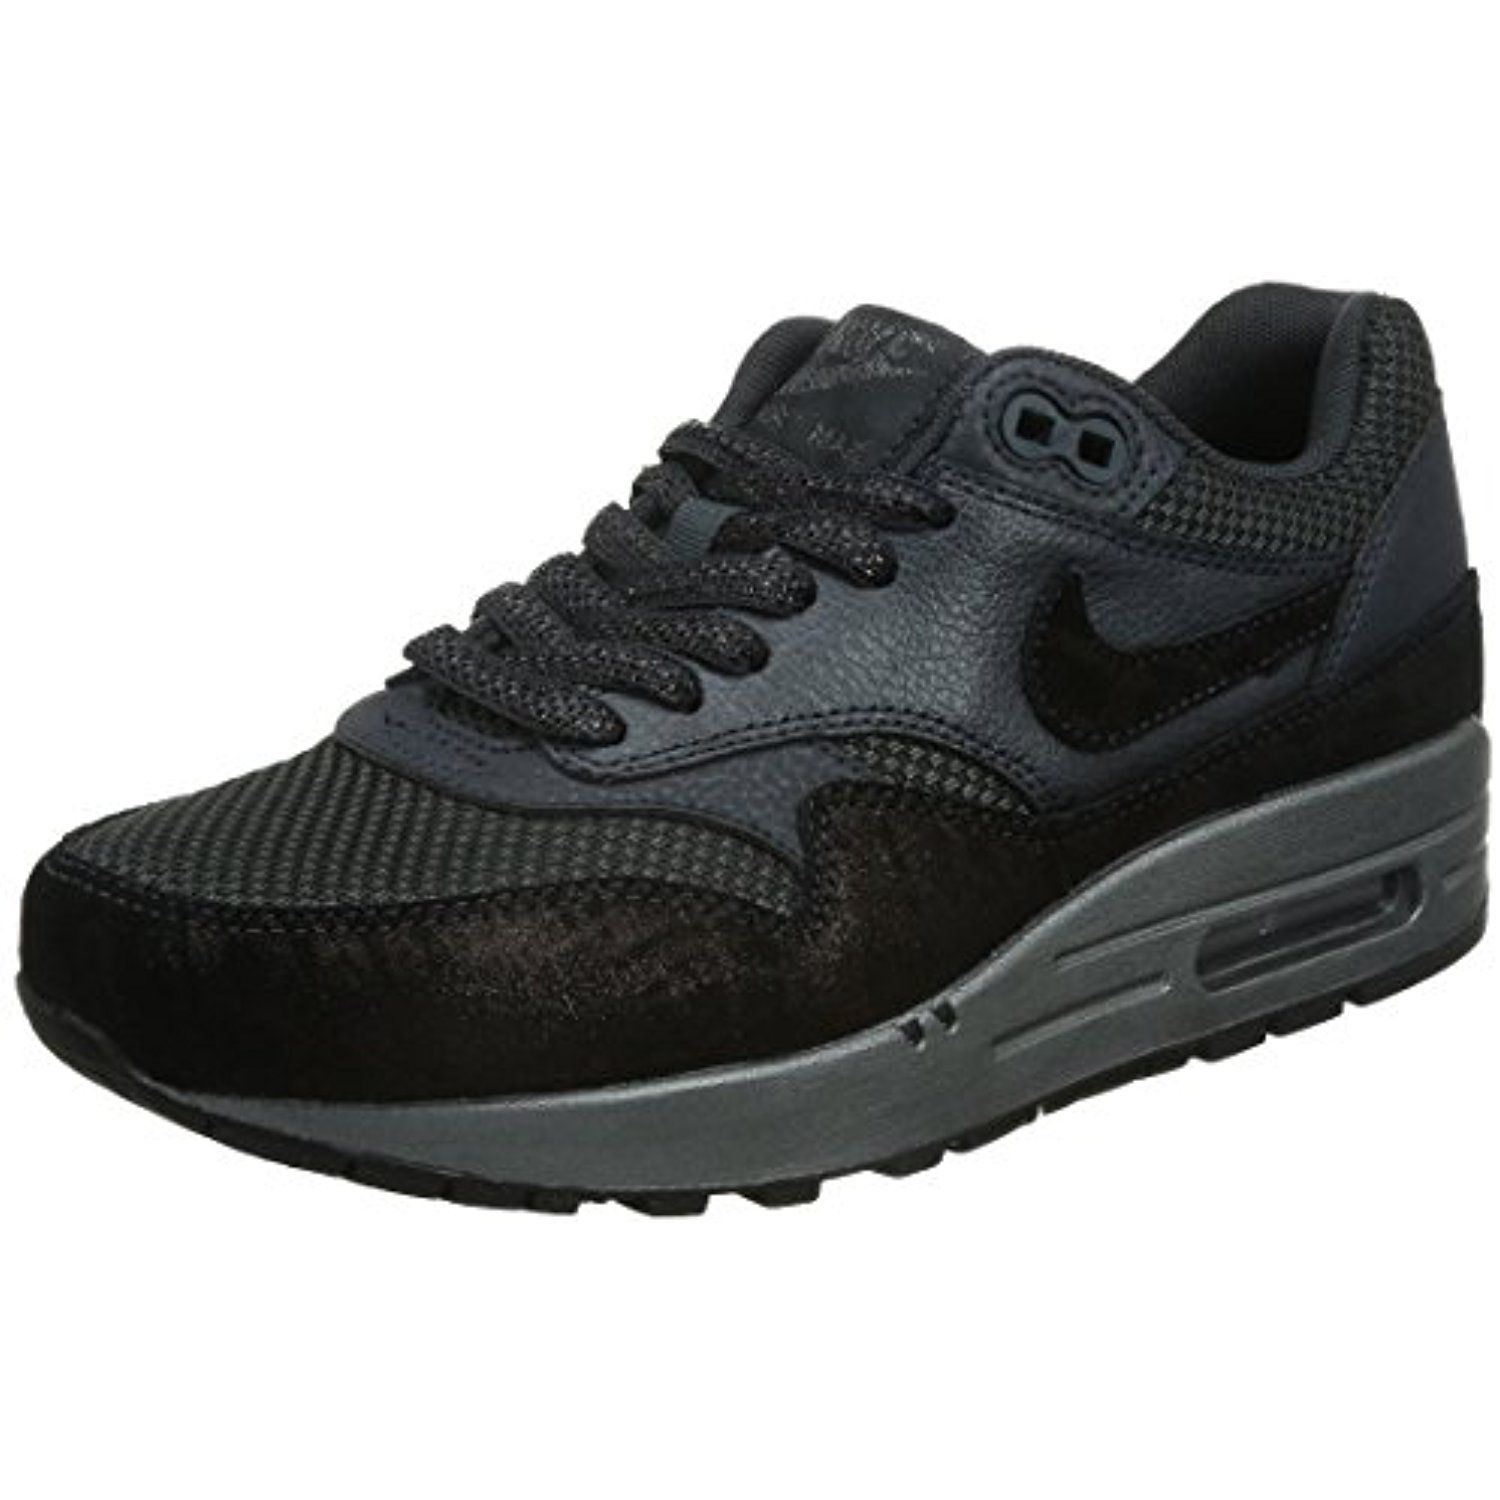 Women's Air Max 1 Prm Running Shoe Click image to